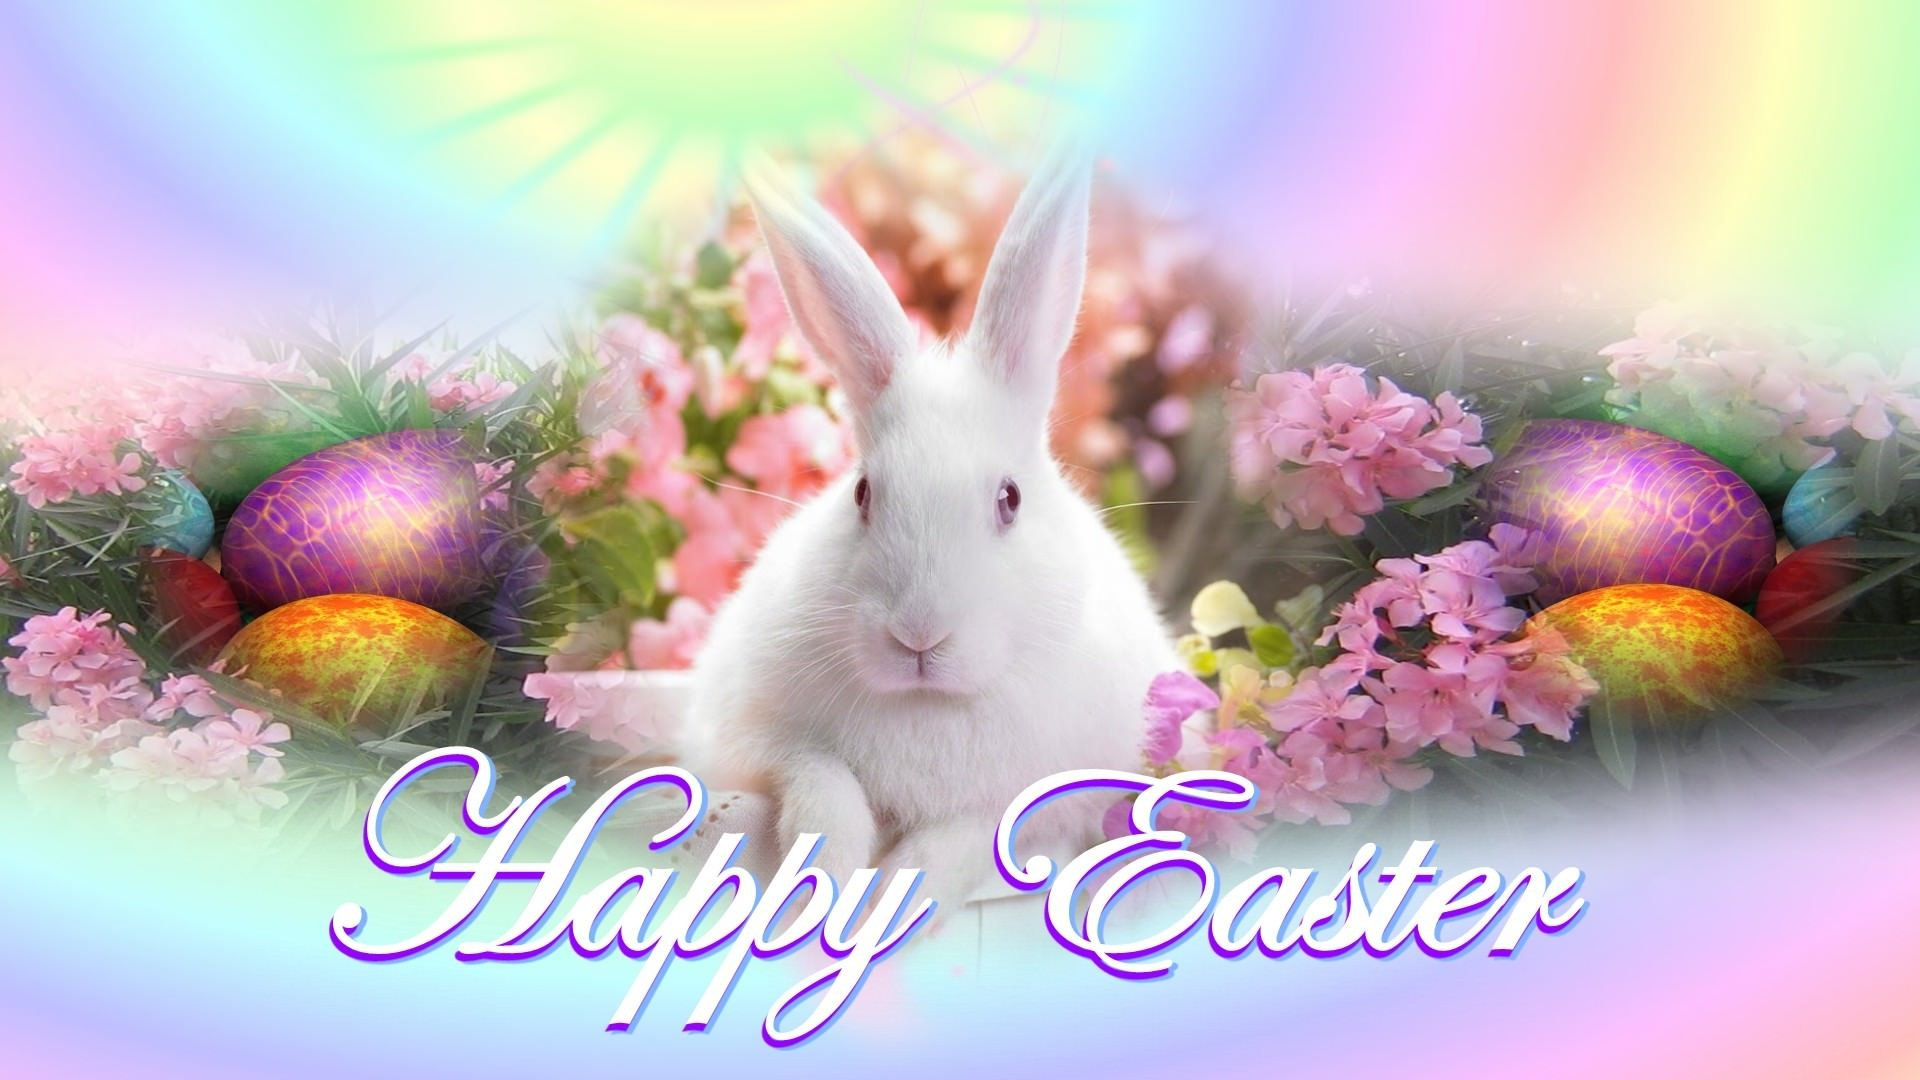 Amazing Happy Easter Wallpaper